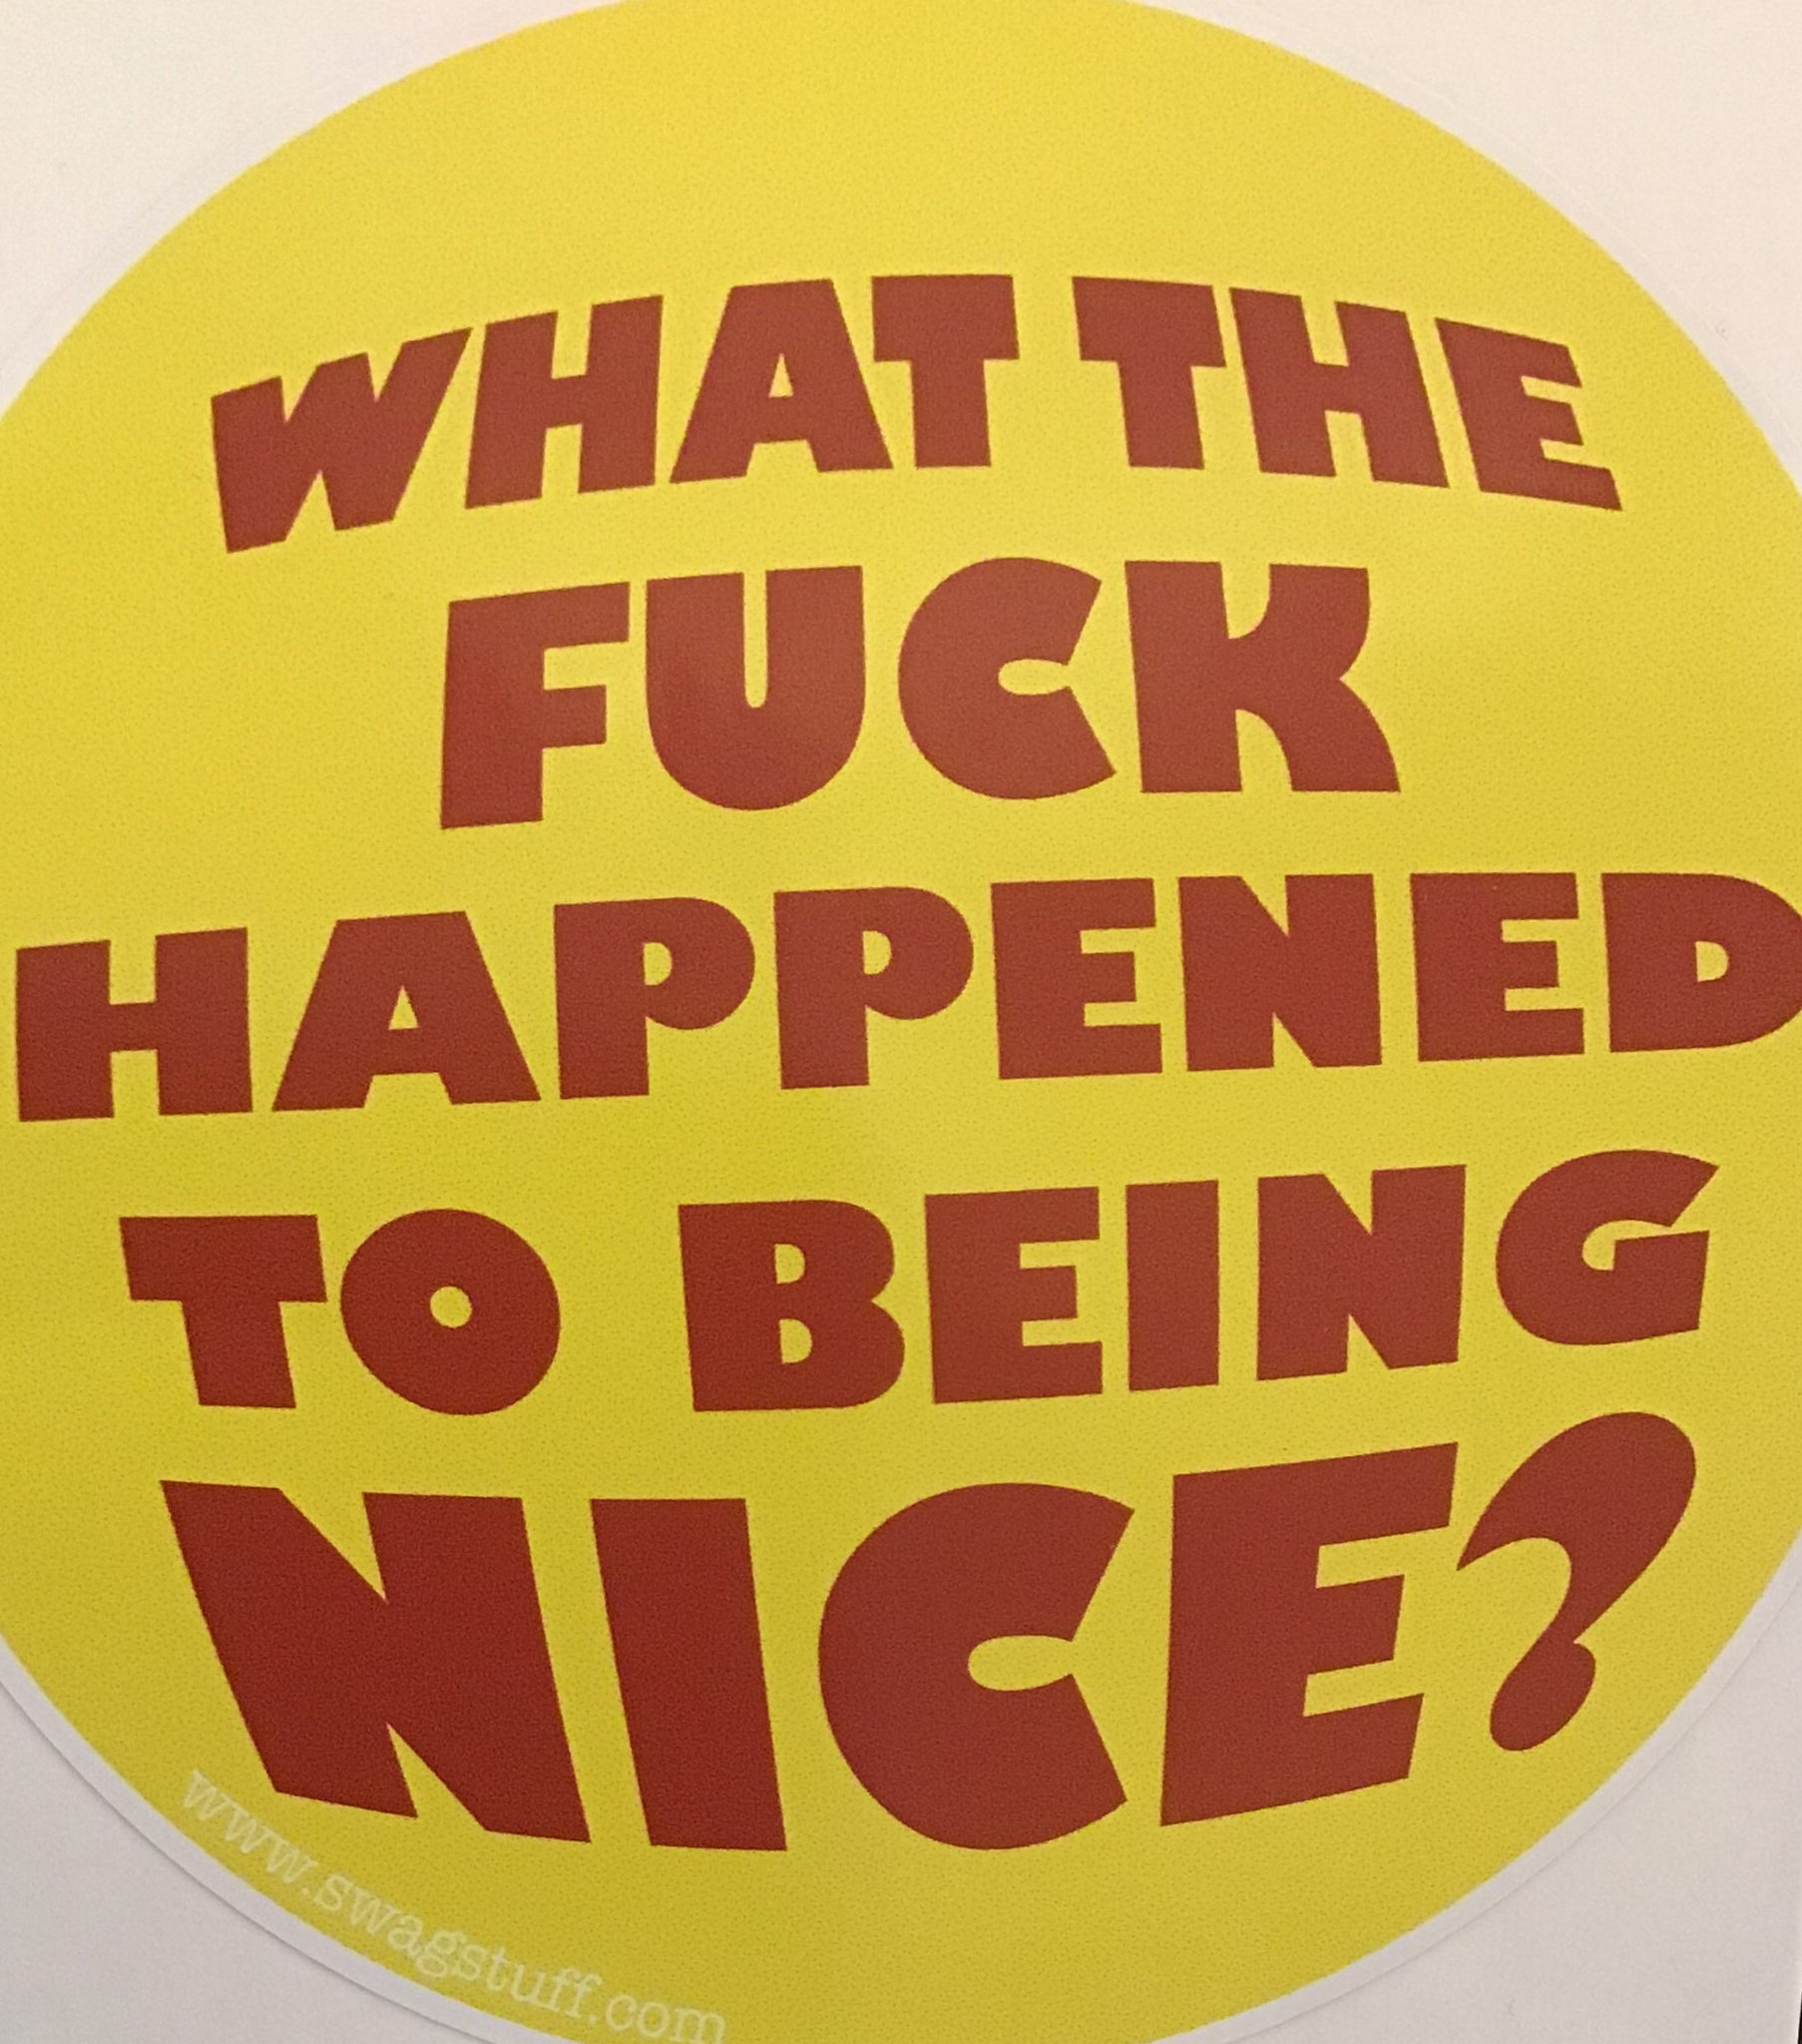 Sticker -what the fuck happened to being nice